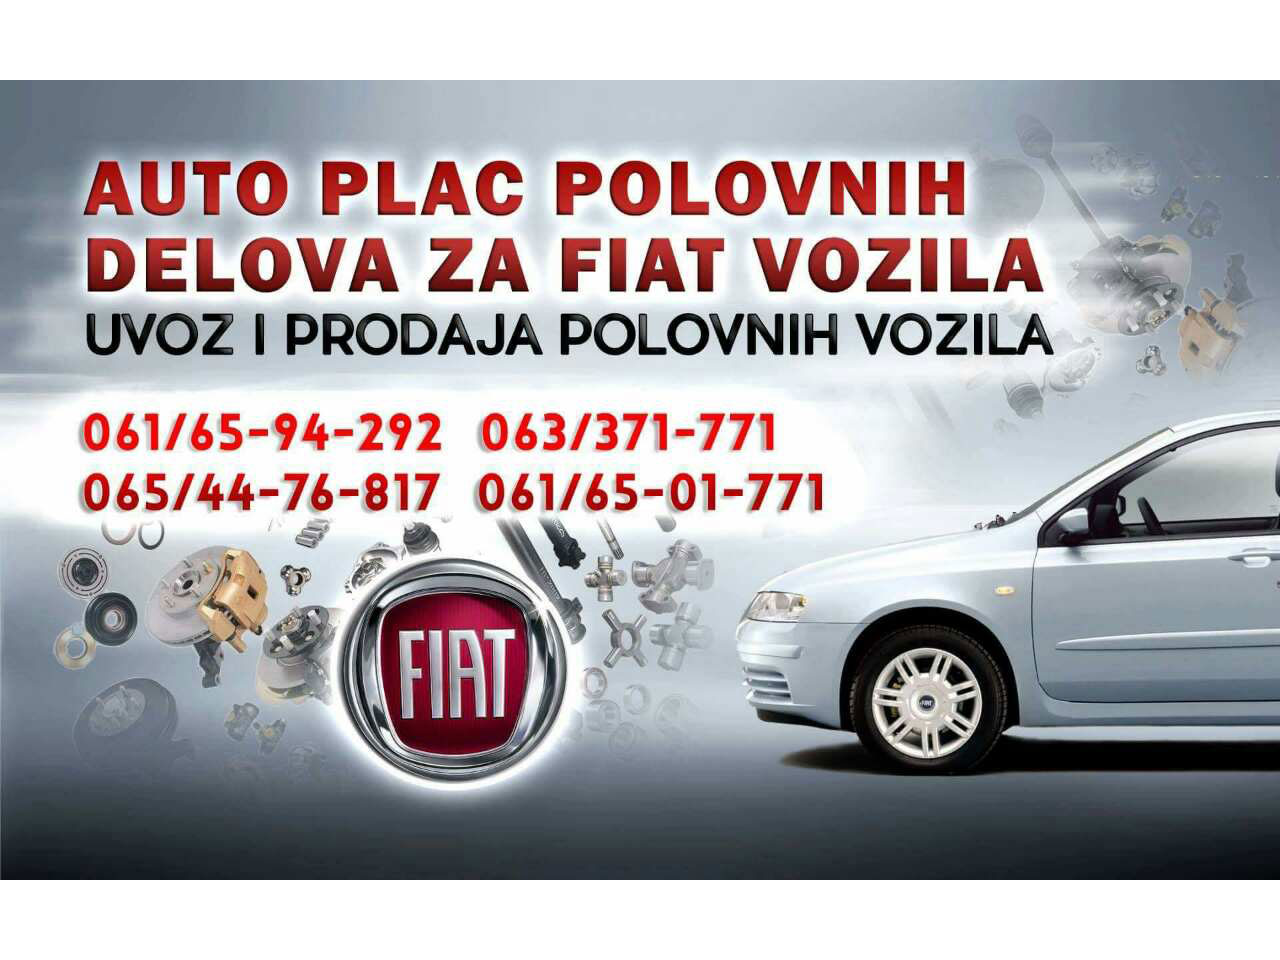 FIAT AUTO PARTS AND SERVICE Auto wastes Pozega - Photo 1